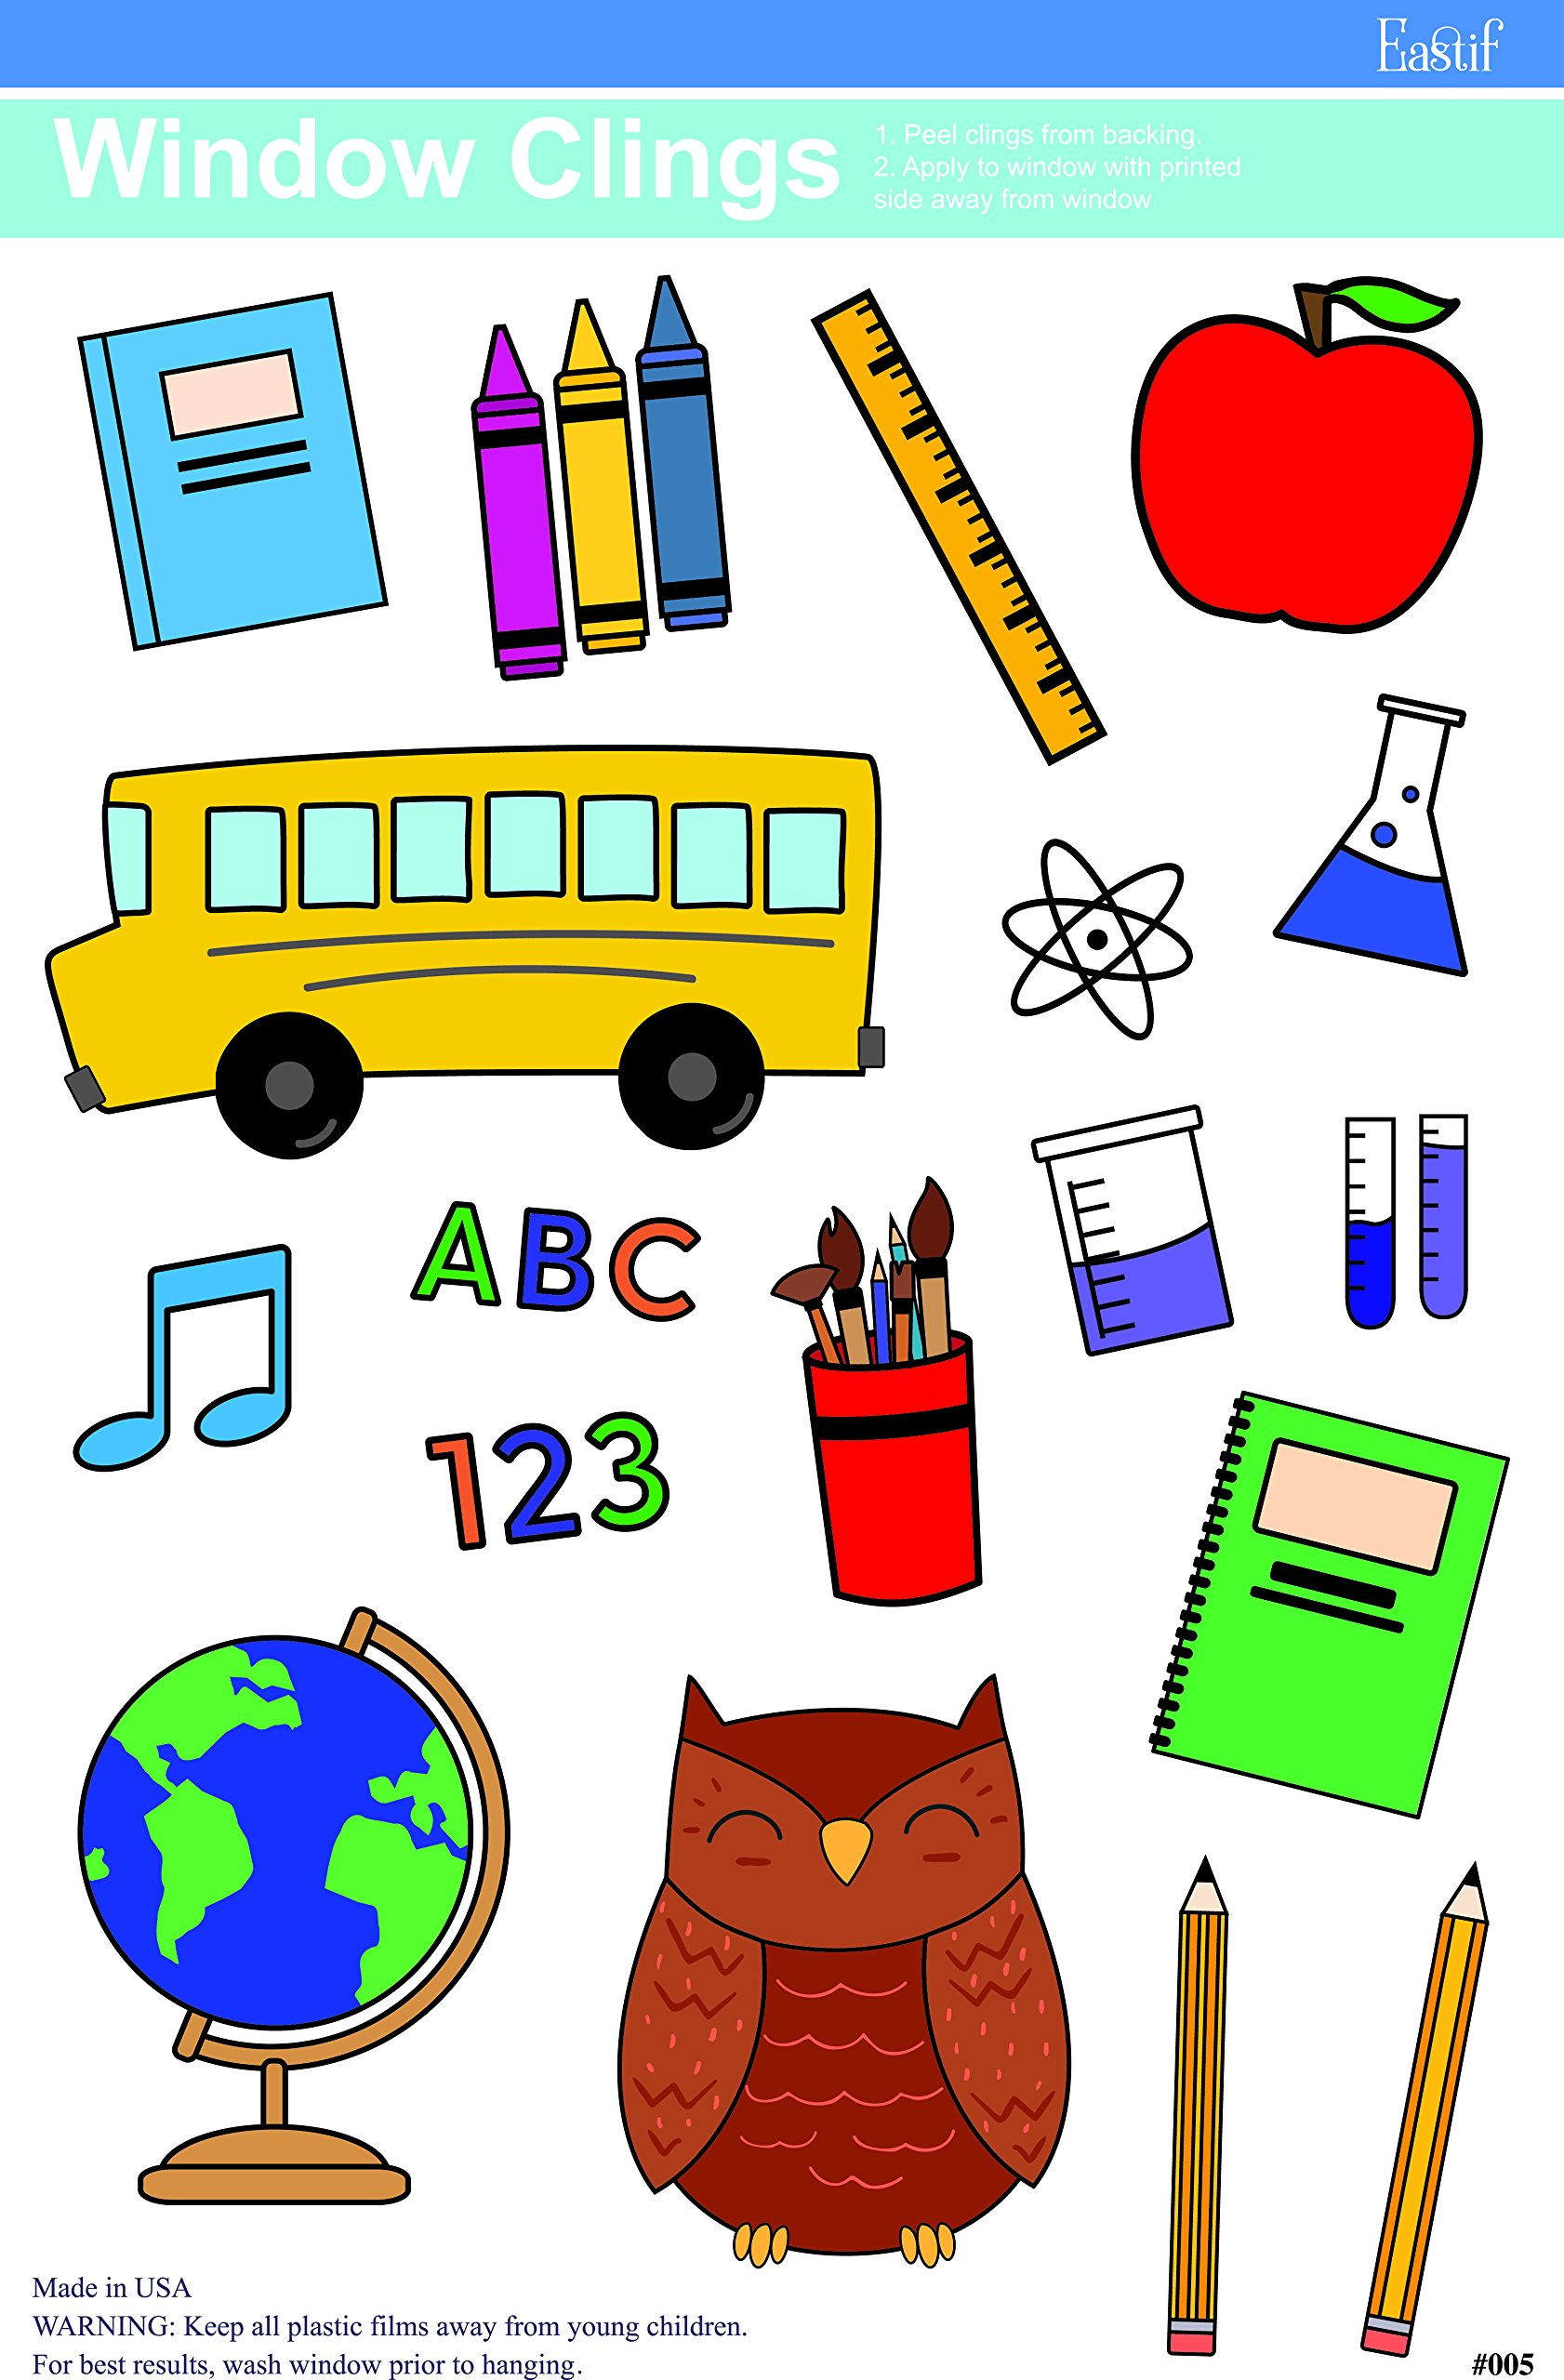 Eastif Back to School and ABC Classroom Window Clings, 2 Sheets by Eastif (Image #2)